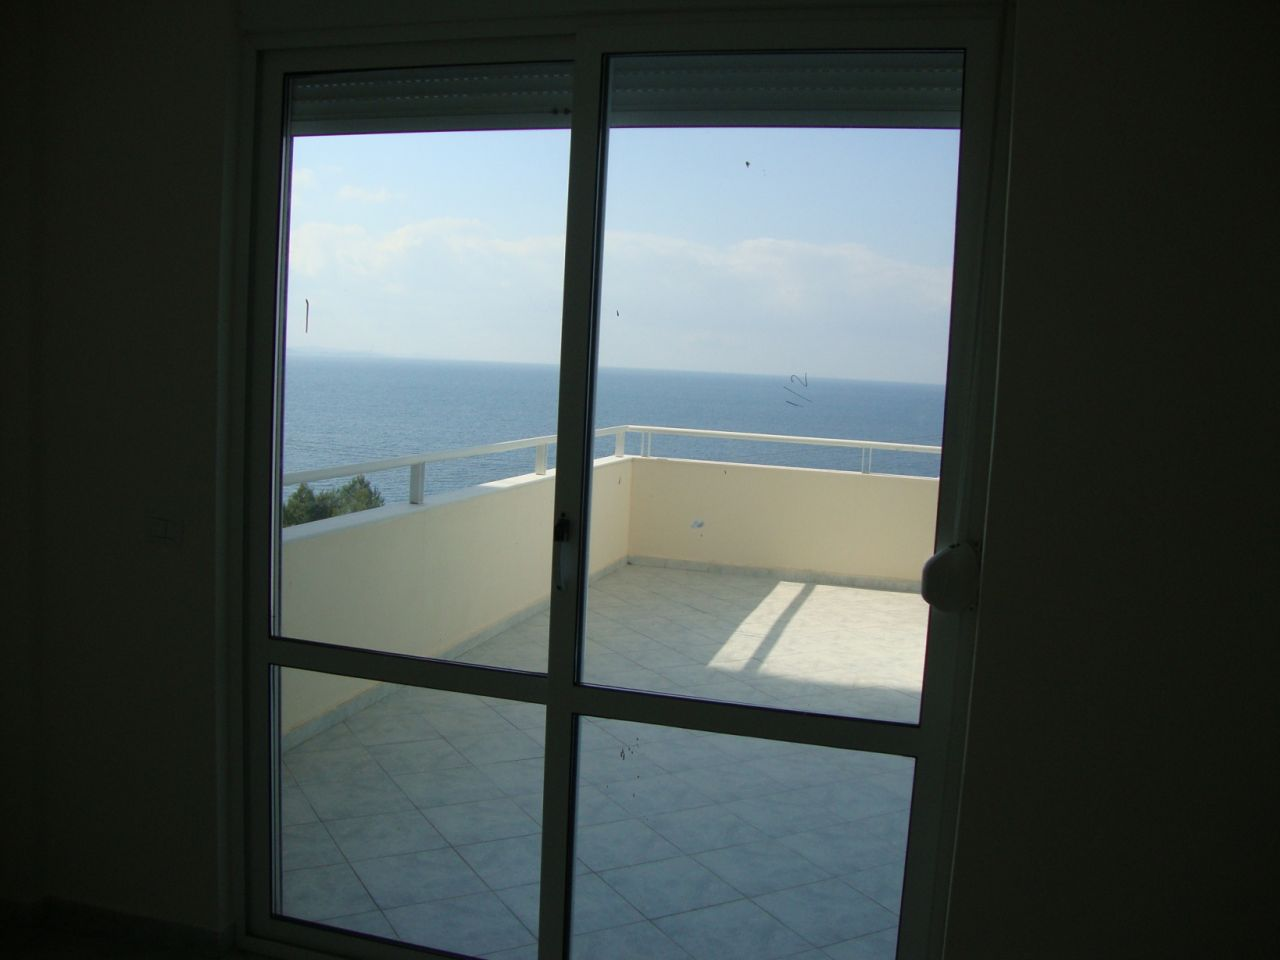 apartment for sale in saranda. apartment with seaview for sale in albania